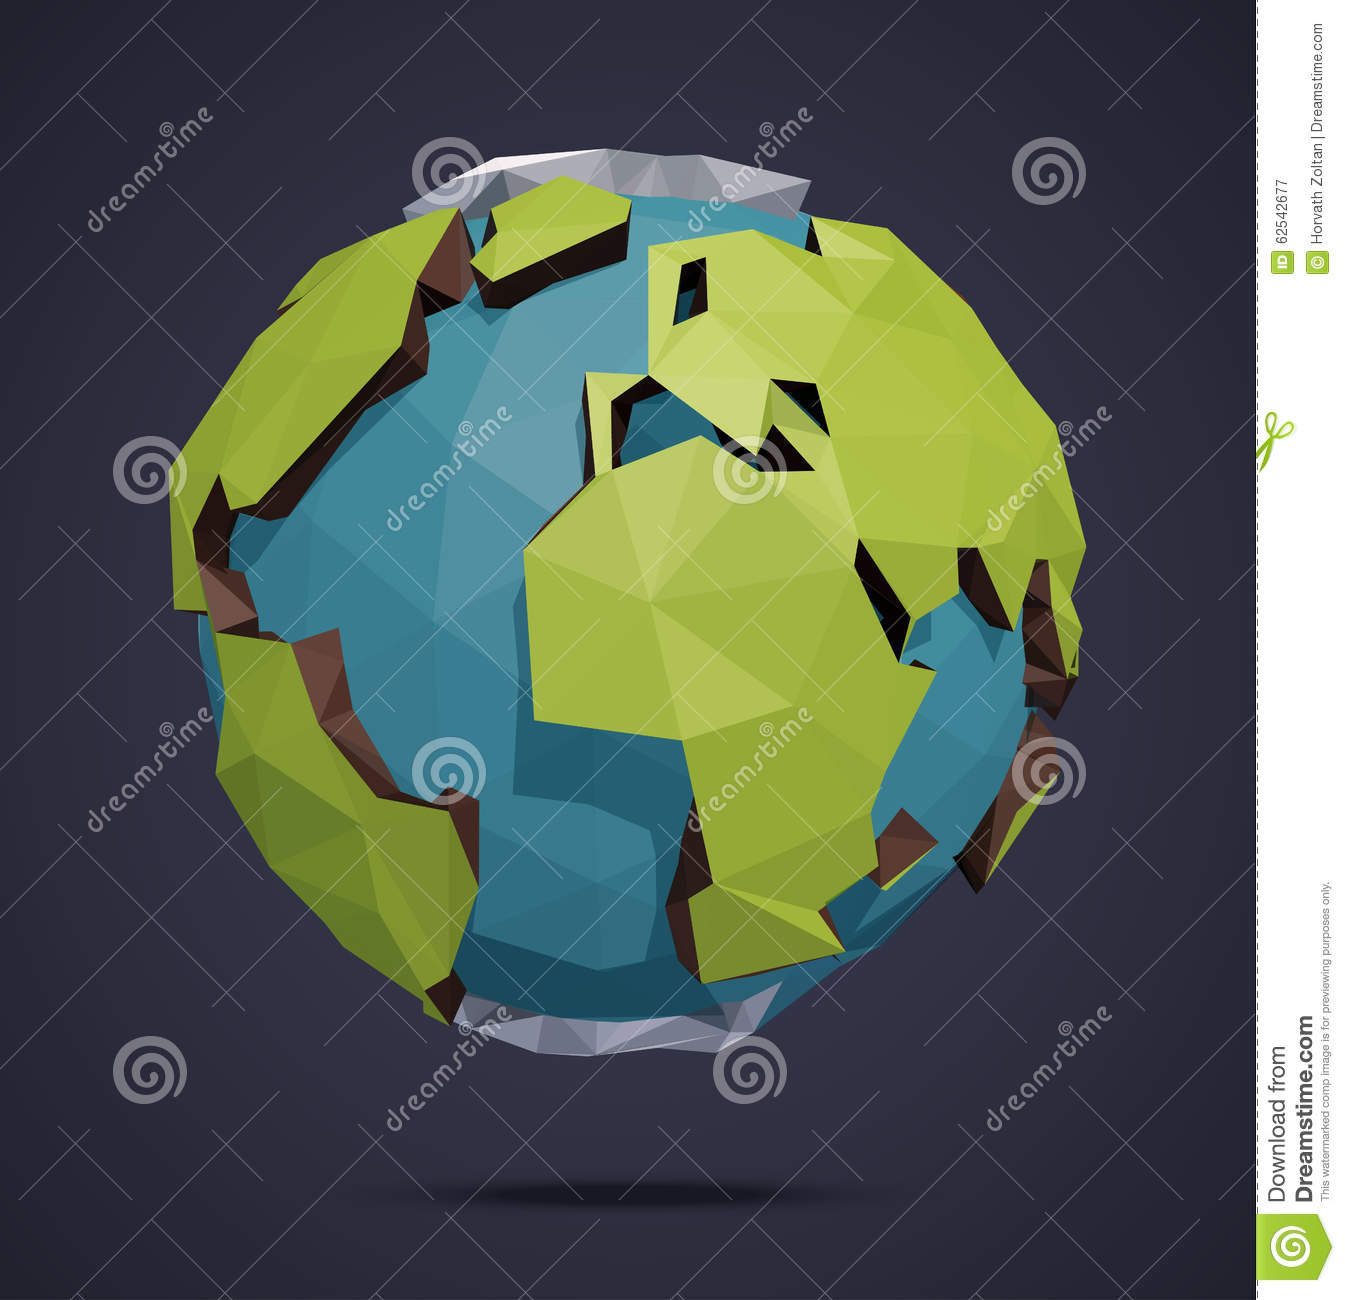 Low poly vector world globe stock vector illustration of cartoon download low poly vector world globe stock vector illustration of cartoon funny 62542677 gumiabroncs Choice Image